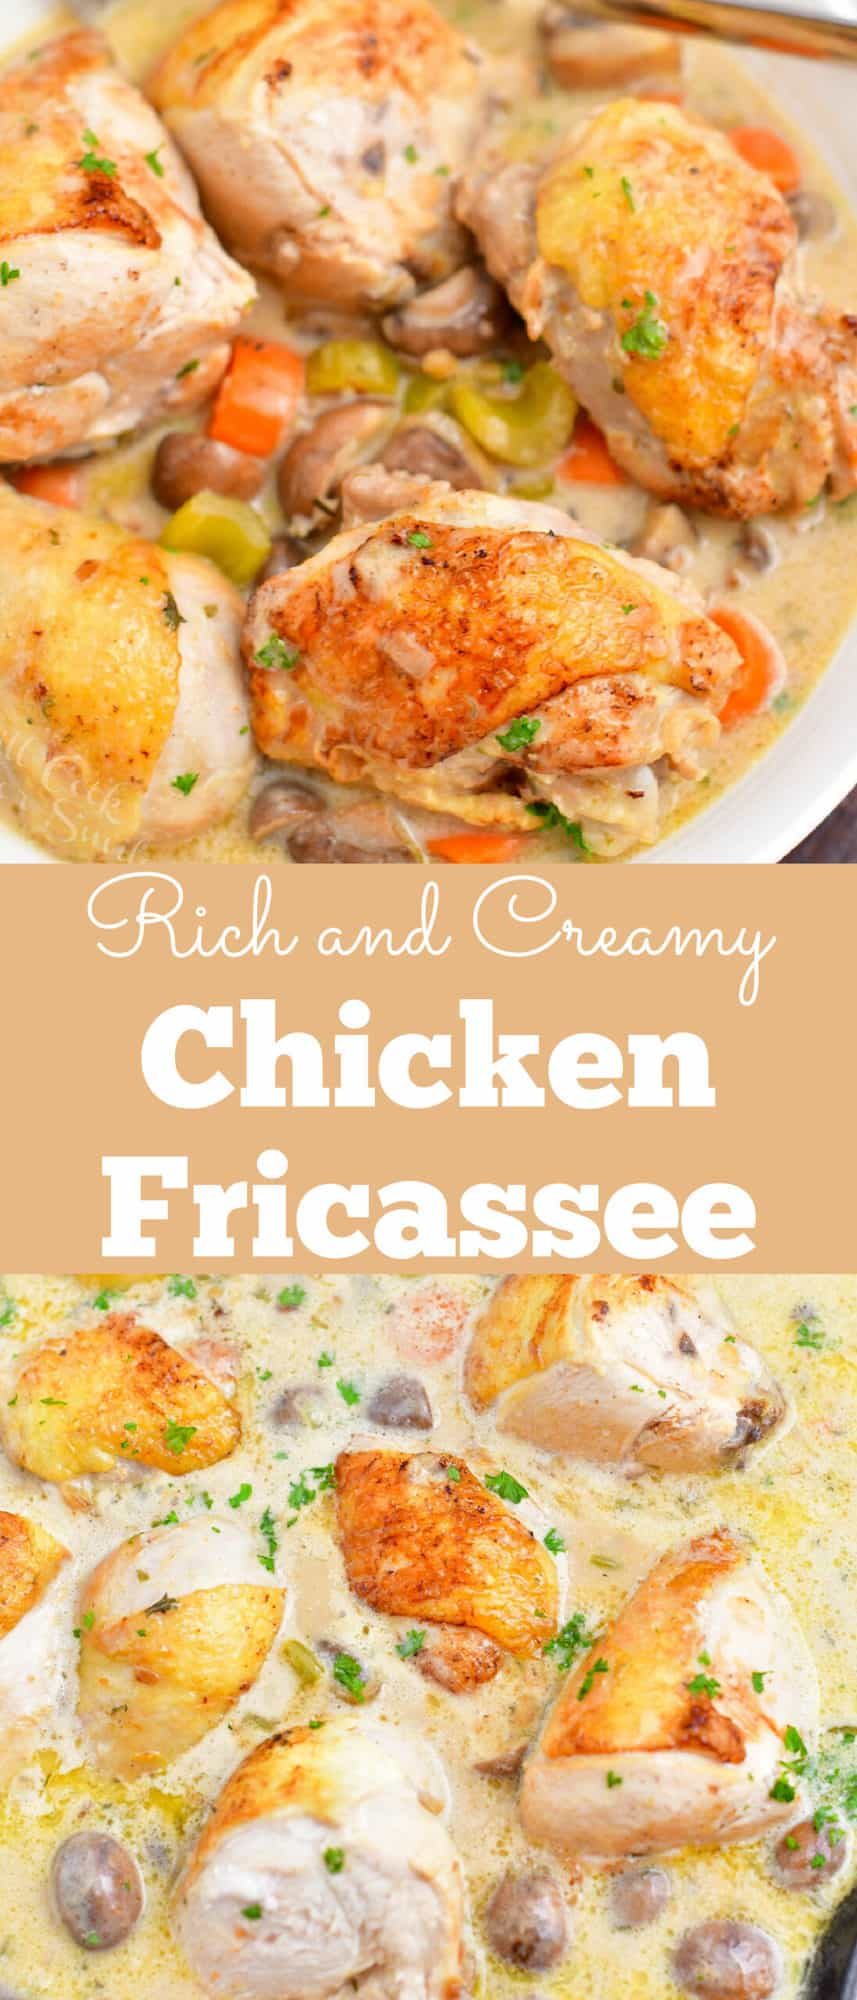 titled photo collage (and shown): Rich and Creamy Chicken Fricassee